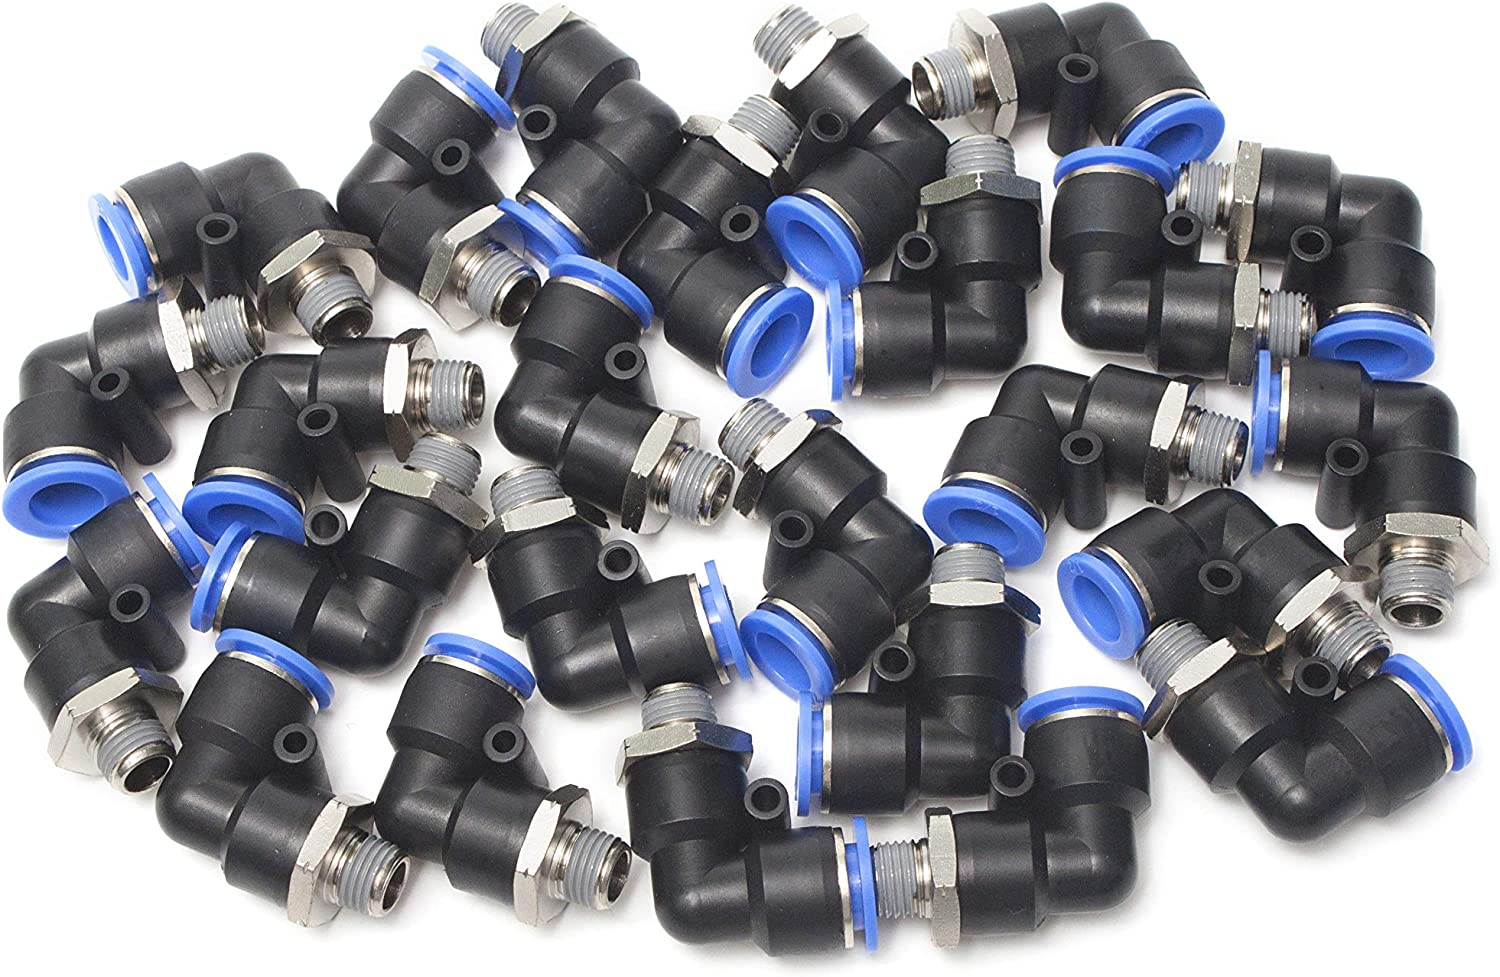 Generic Pneumatic Push in Quick Touch to Connect Fitting 3//8 OD Tube x 1//2 Male NPT 90 Deg Swivel Elbow Coupler Pack of 25